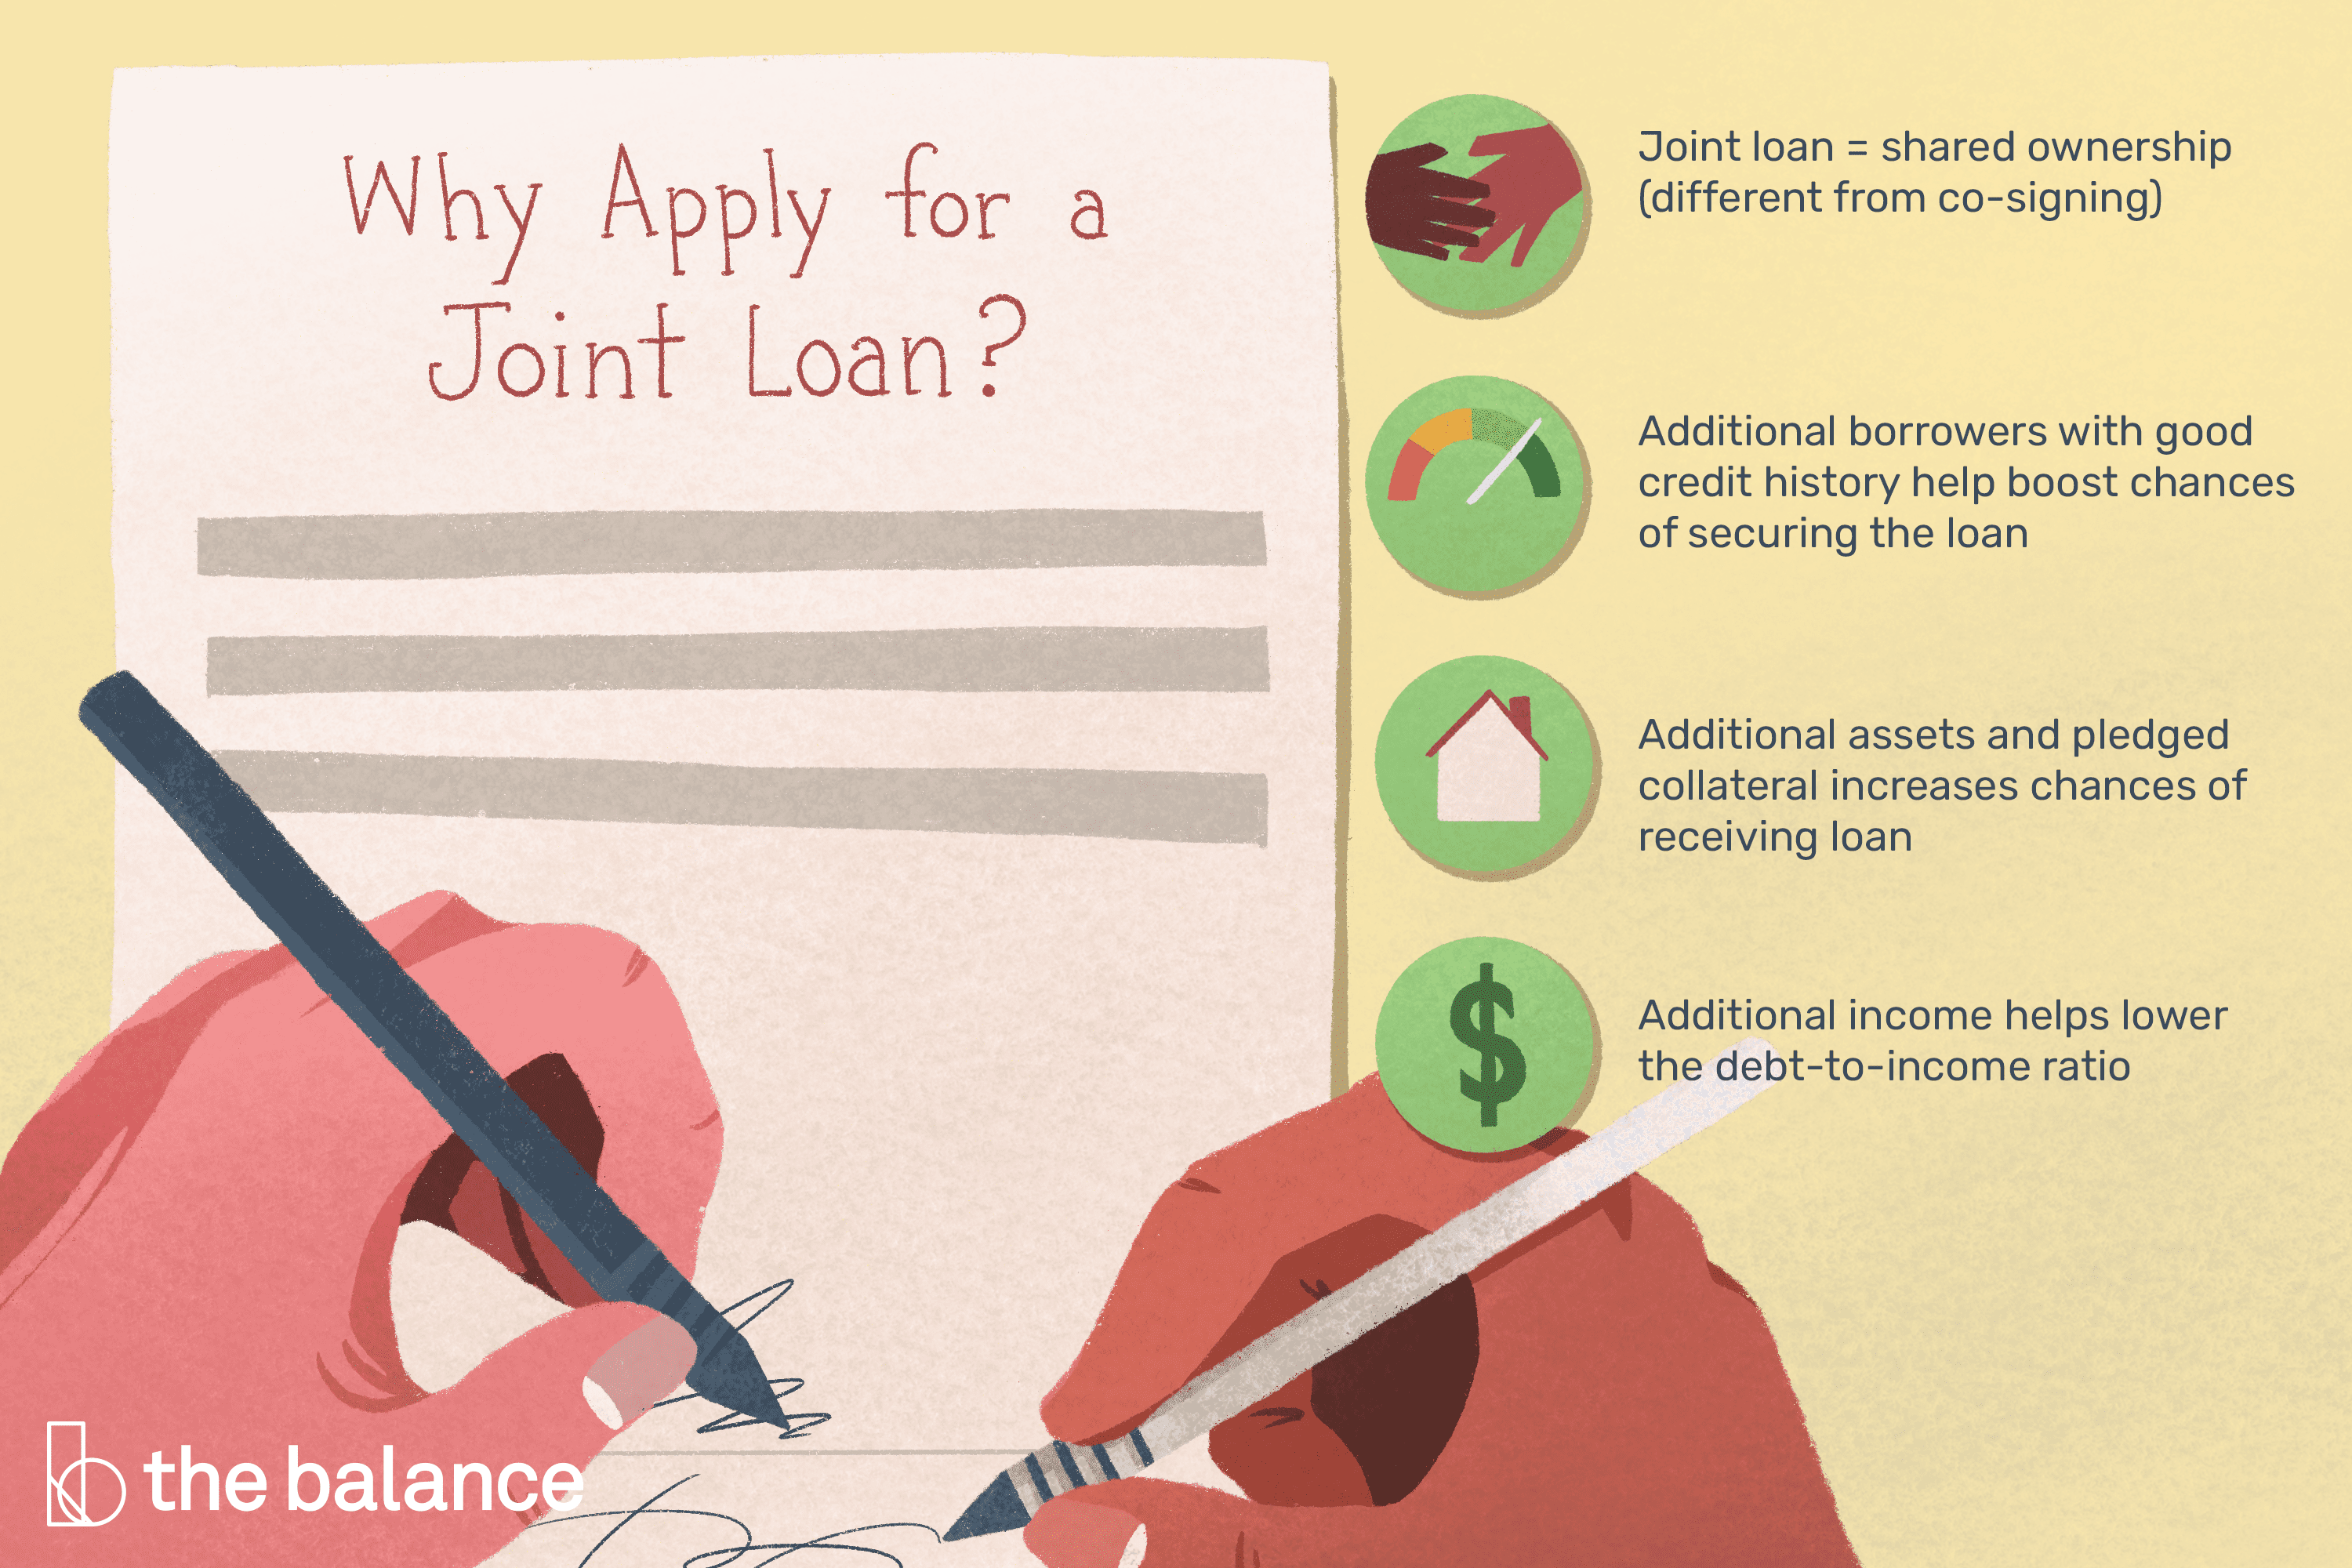 Joint and Shared Ownership Loans for Multiple Borrowers